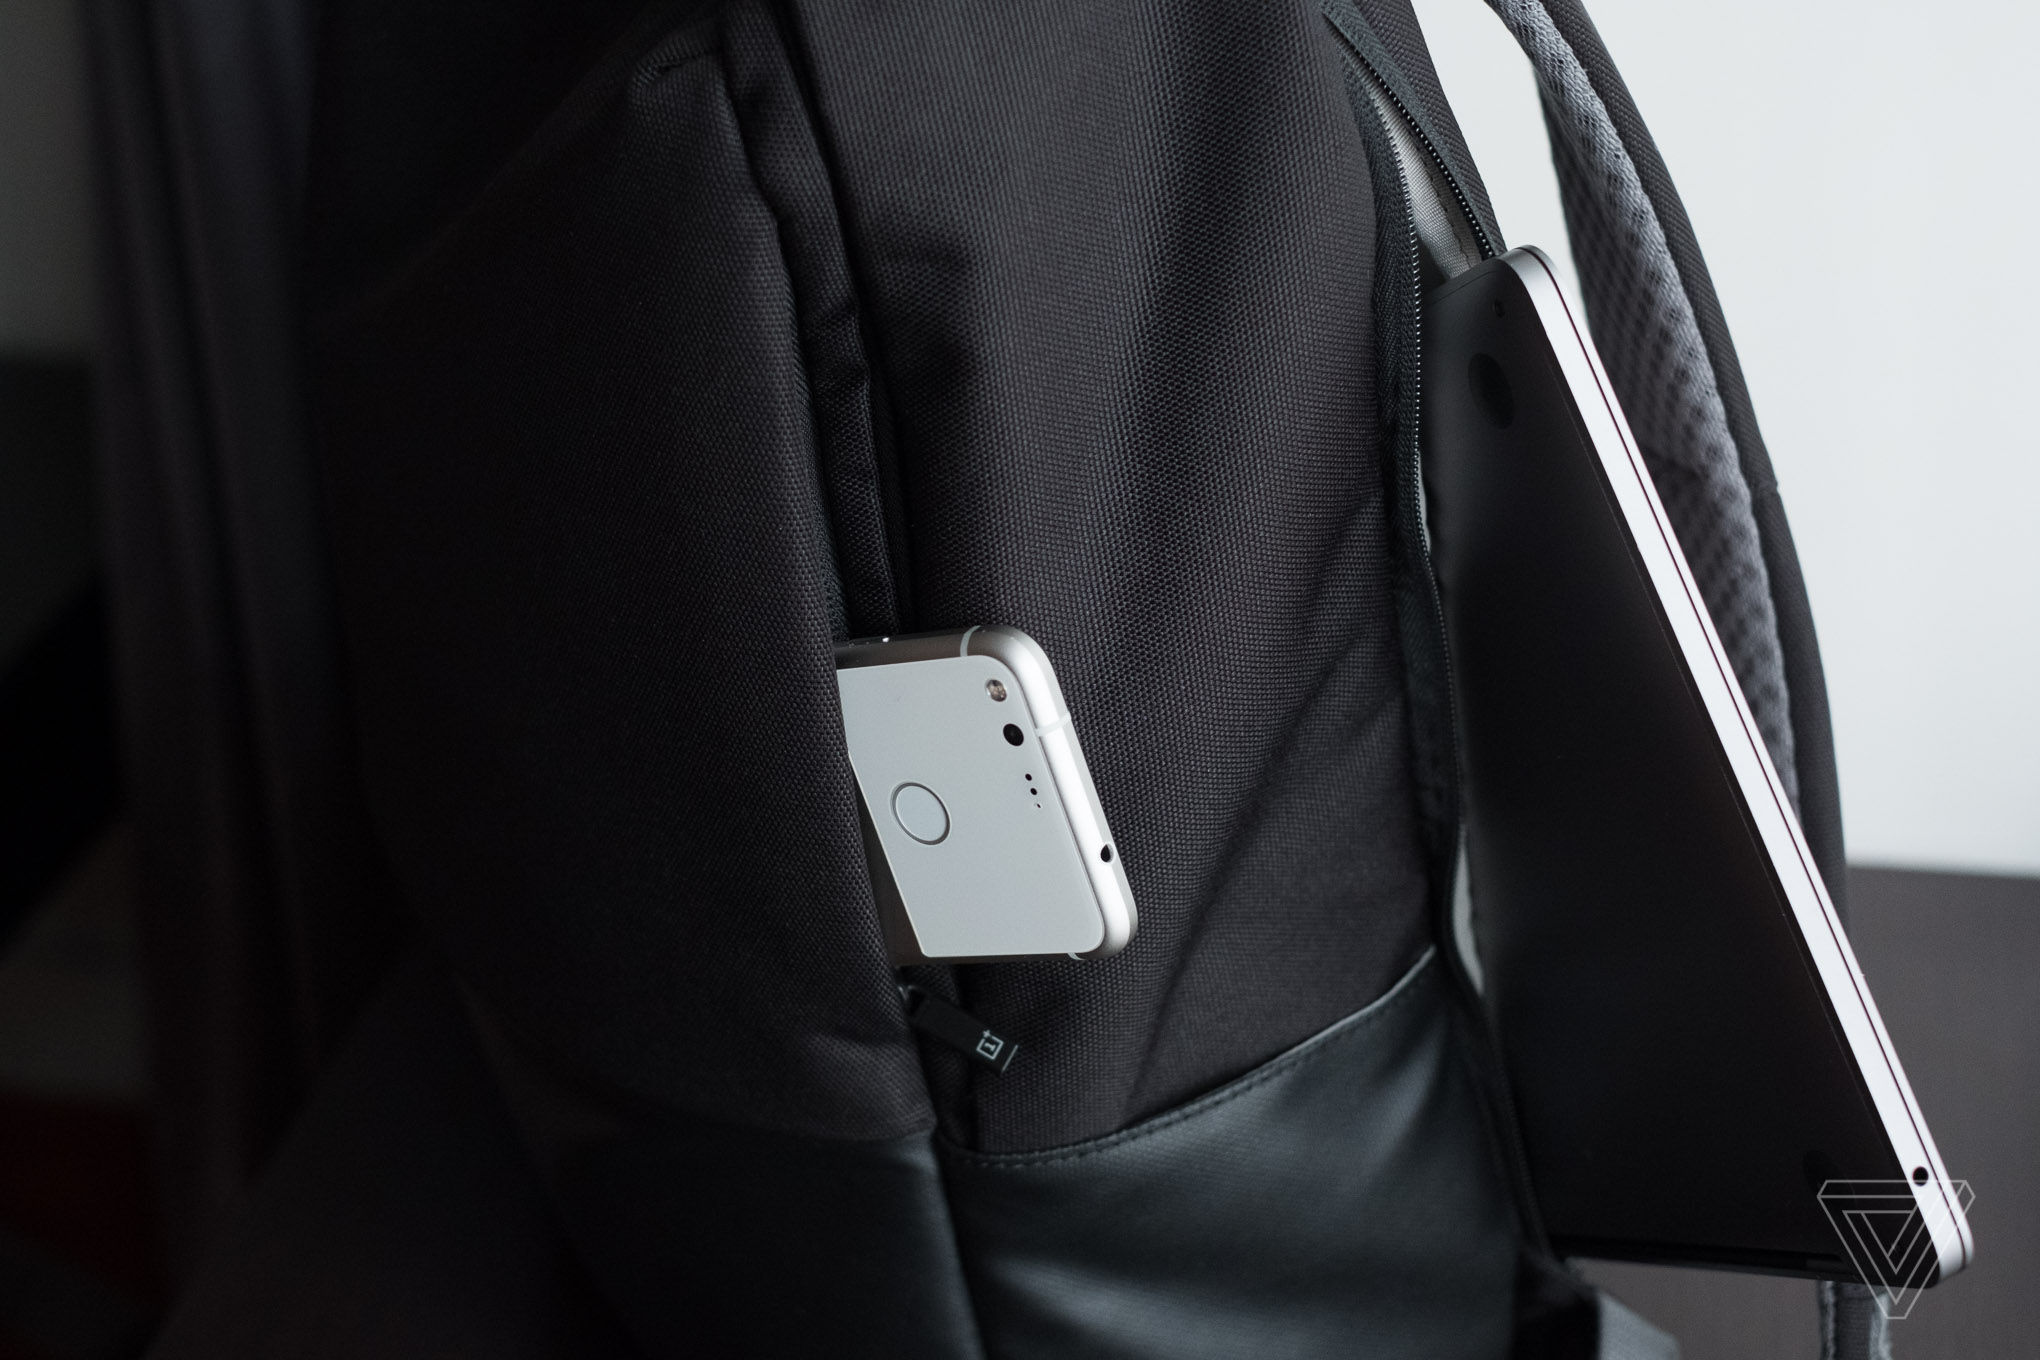 Oneplus Travel Backpack Review